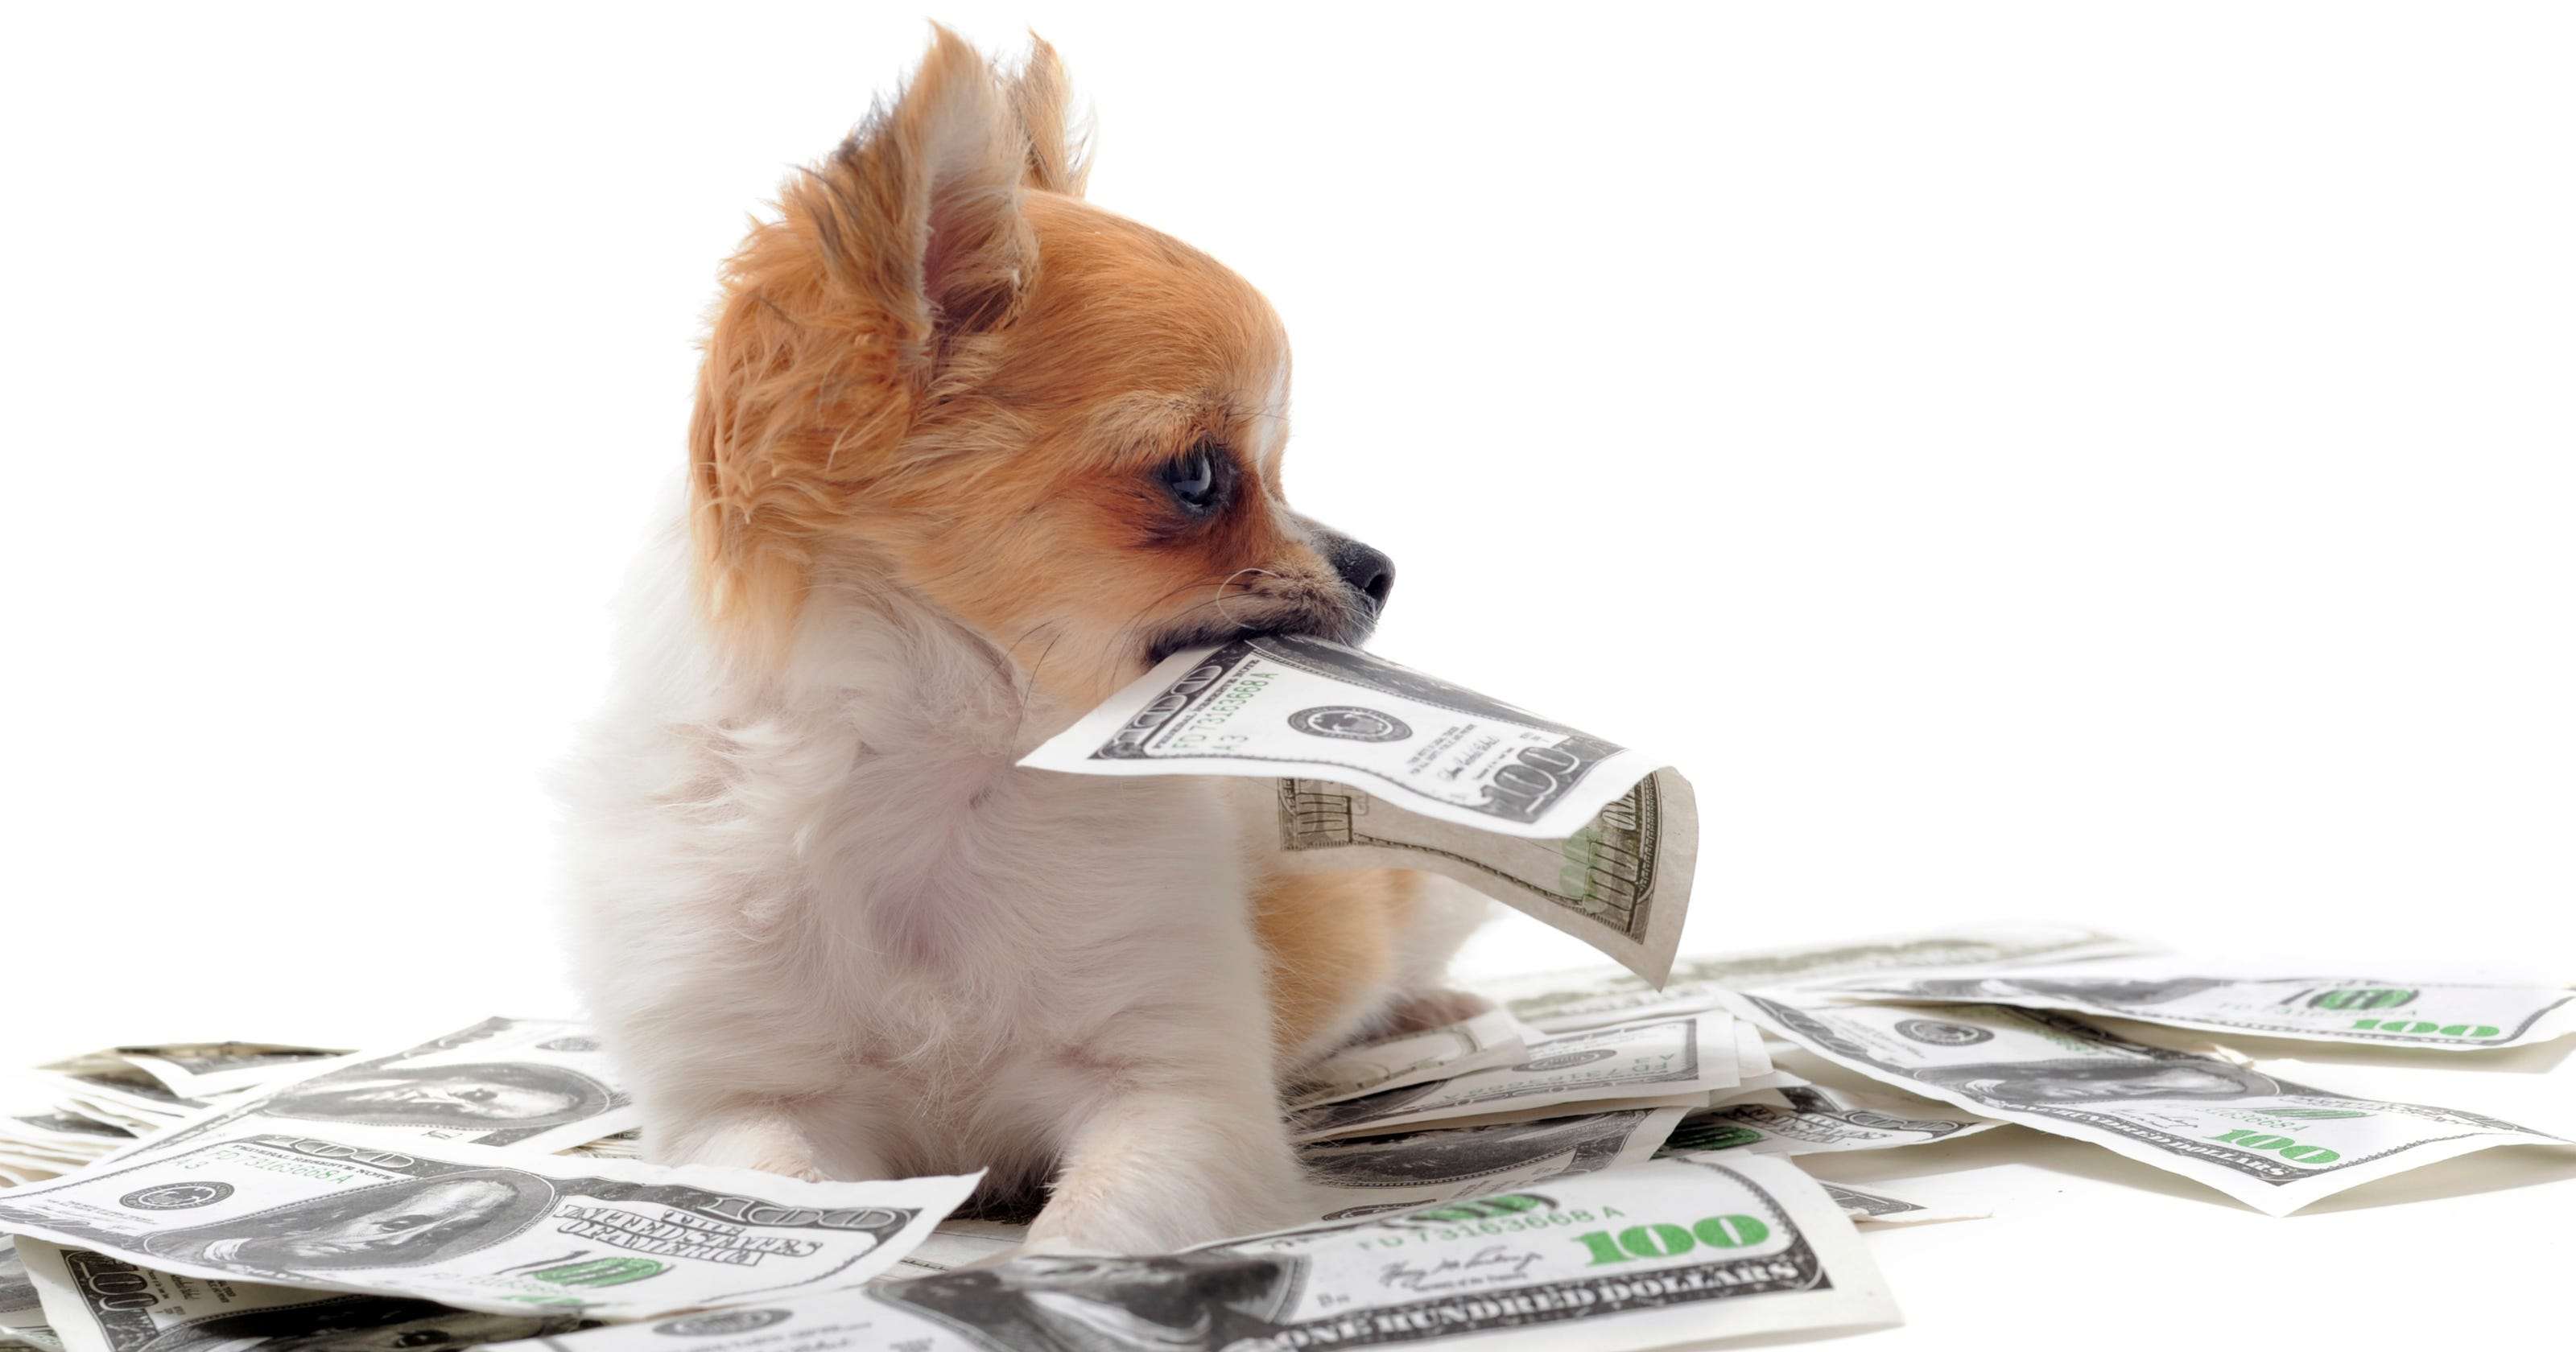 Tompor: Dog chewed up your cash? What to do